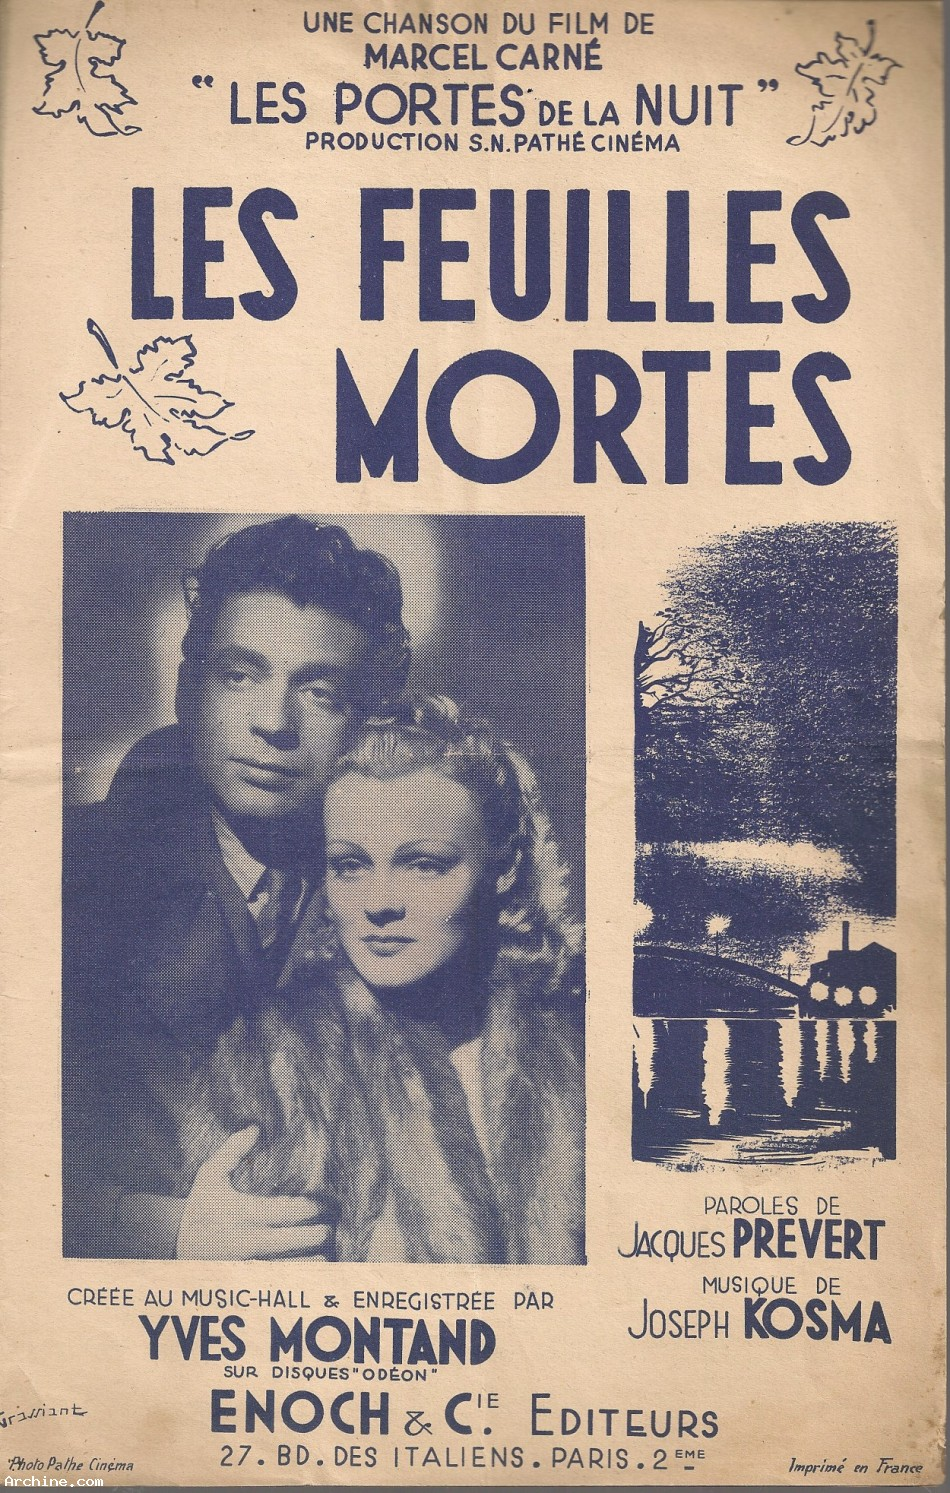 Partition les feuilles mortes yves montand ann e for Le jardin yves montand